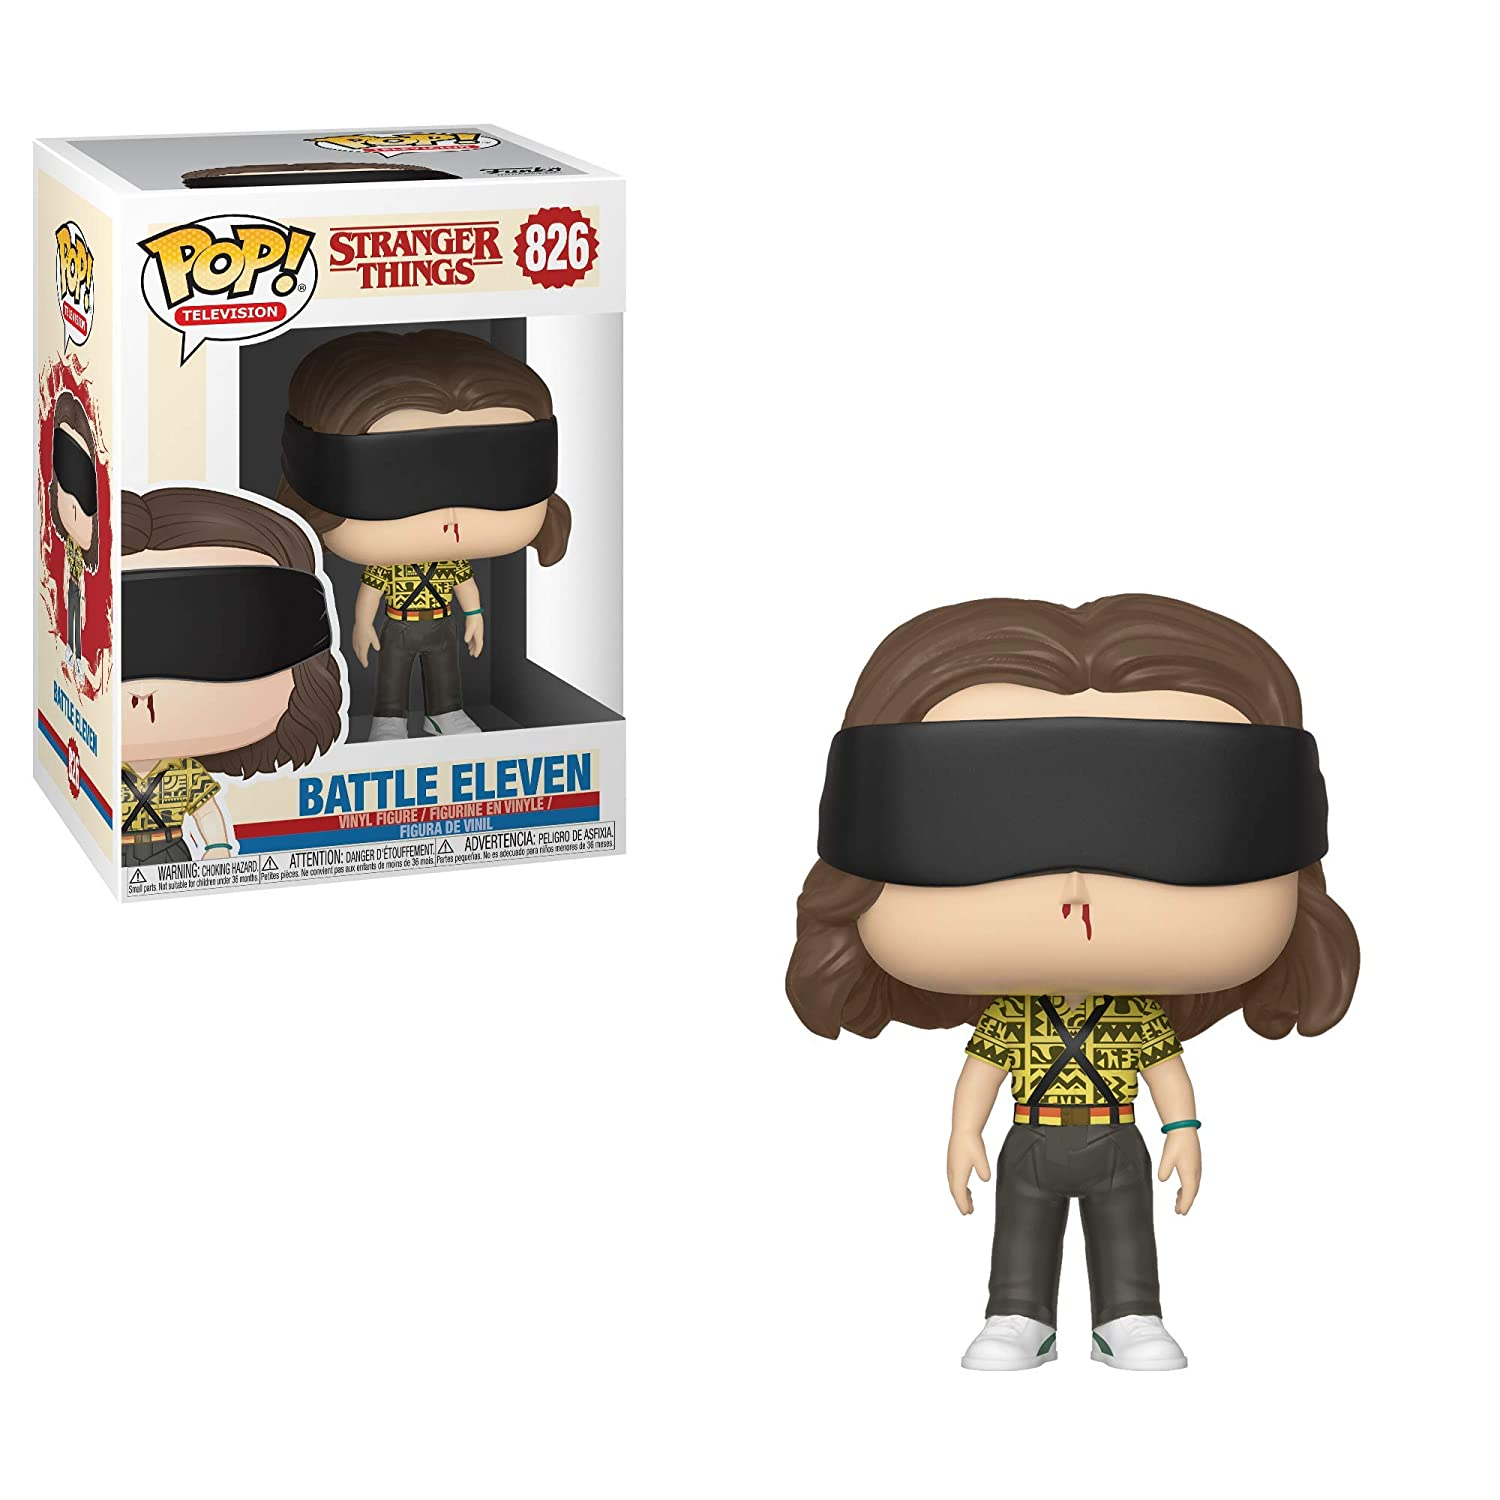 Funko- Pop Vinilo: Stranger Things: Battle Eleven Figura Coleccionable, Multicolor, Talla única (39367)